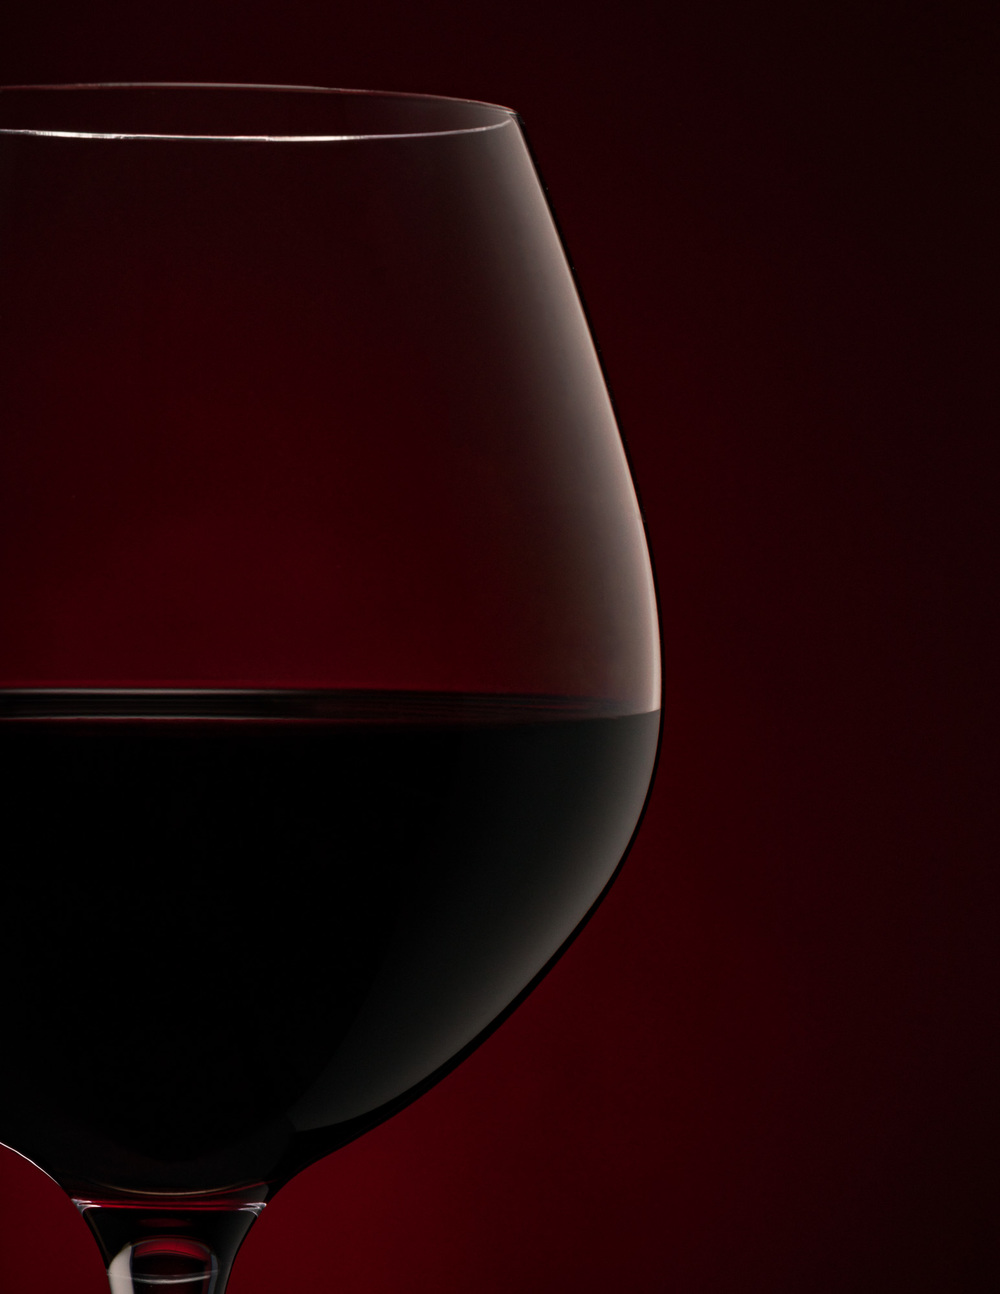 Wine Glass of Minage a Trois Midnight by Arizona Commercial Beverage Photographer Chad J Weed